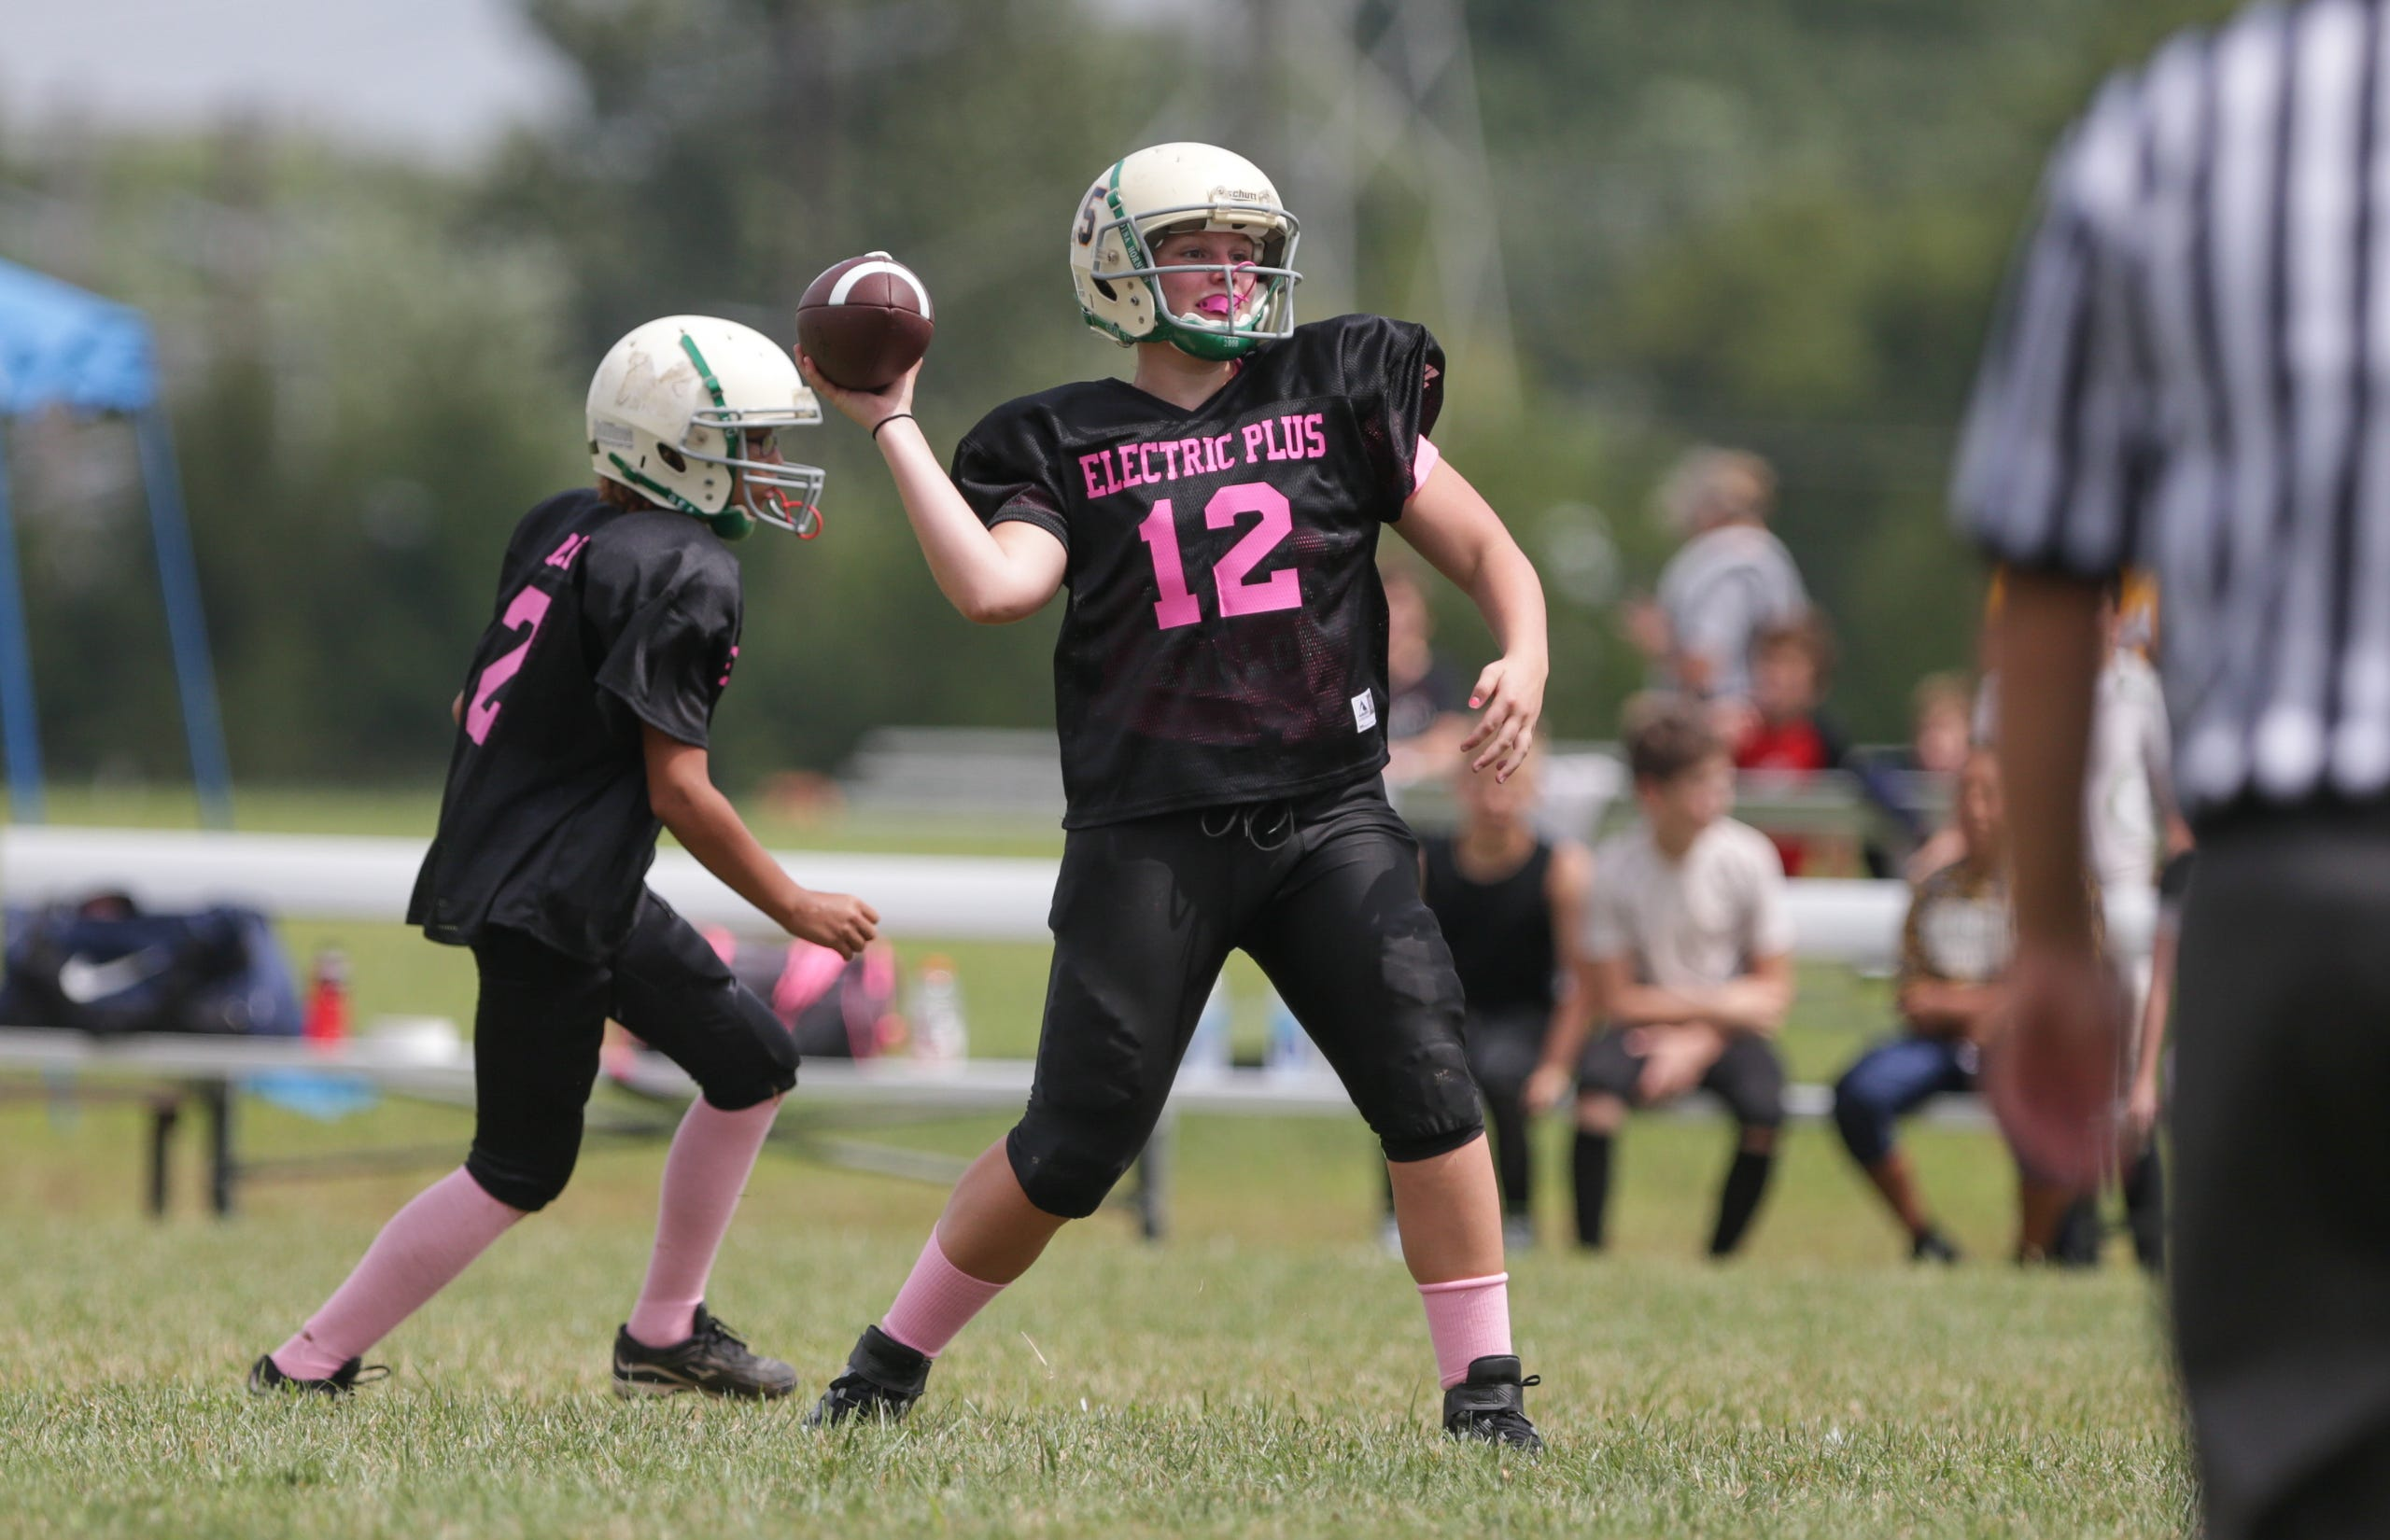 Indiana Girls Tackle Football Leagues face off